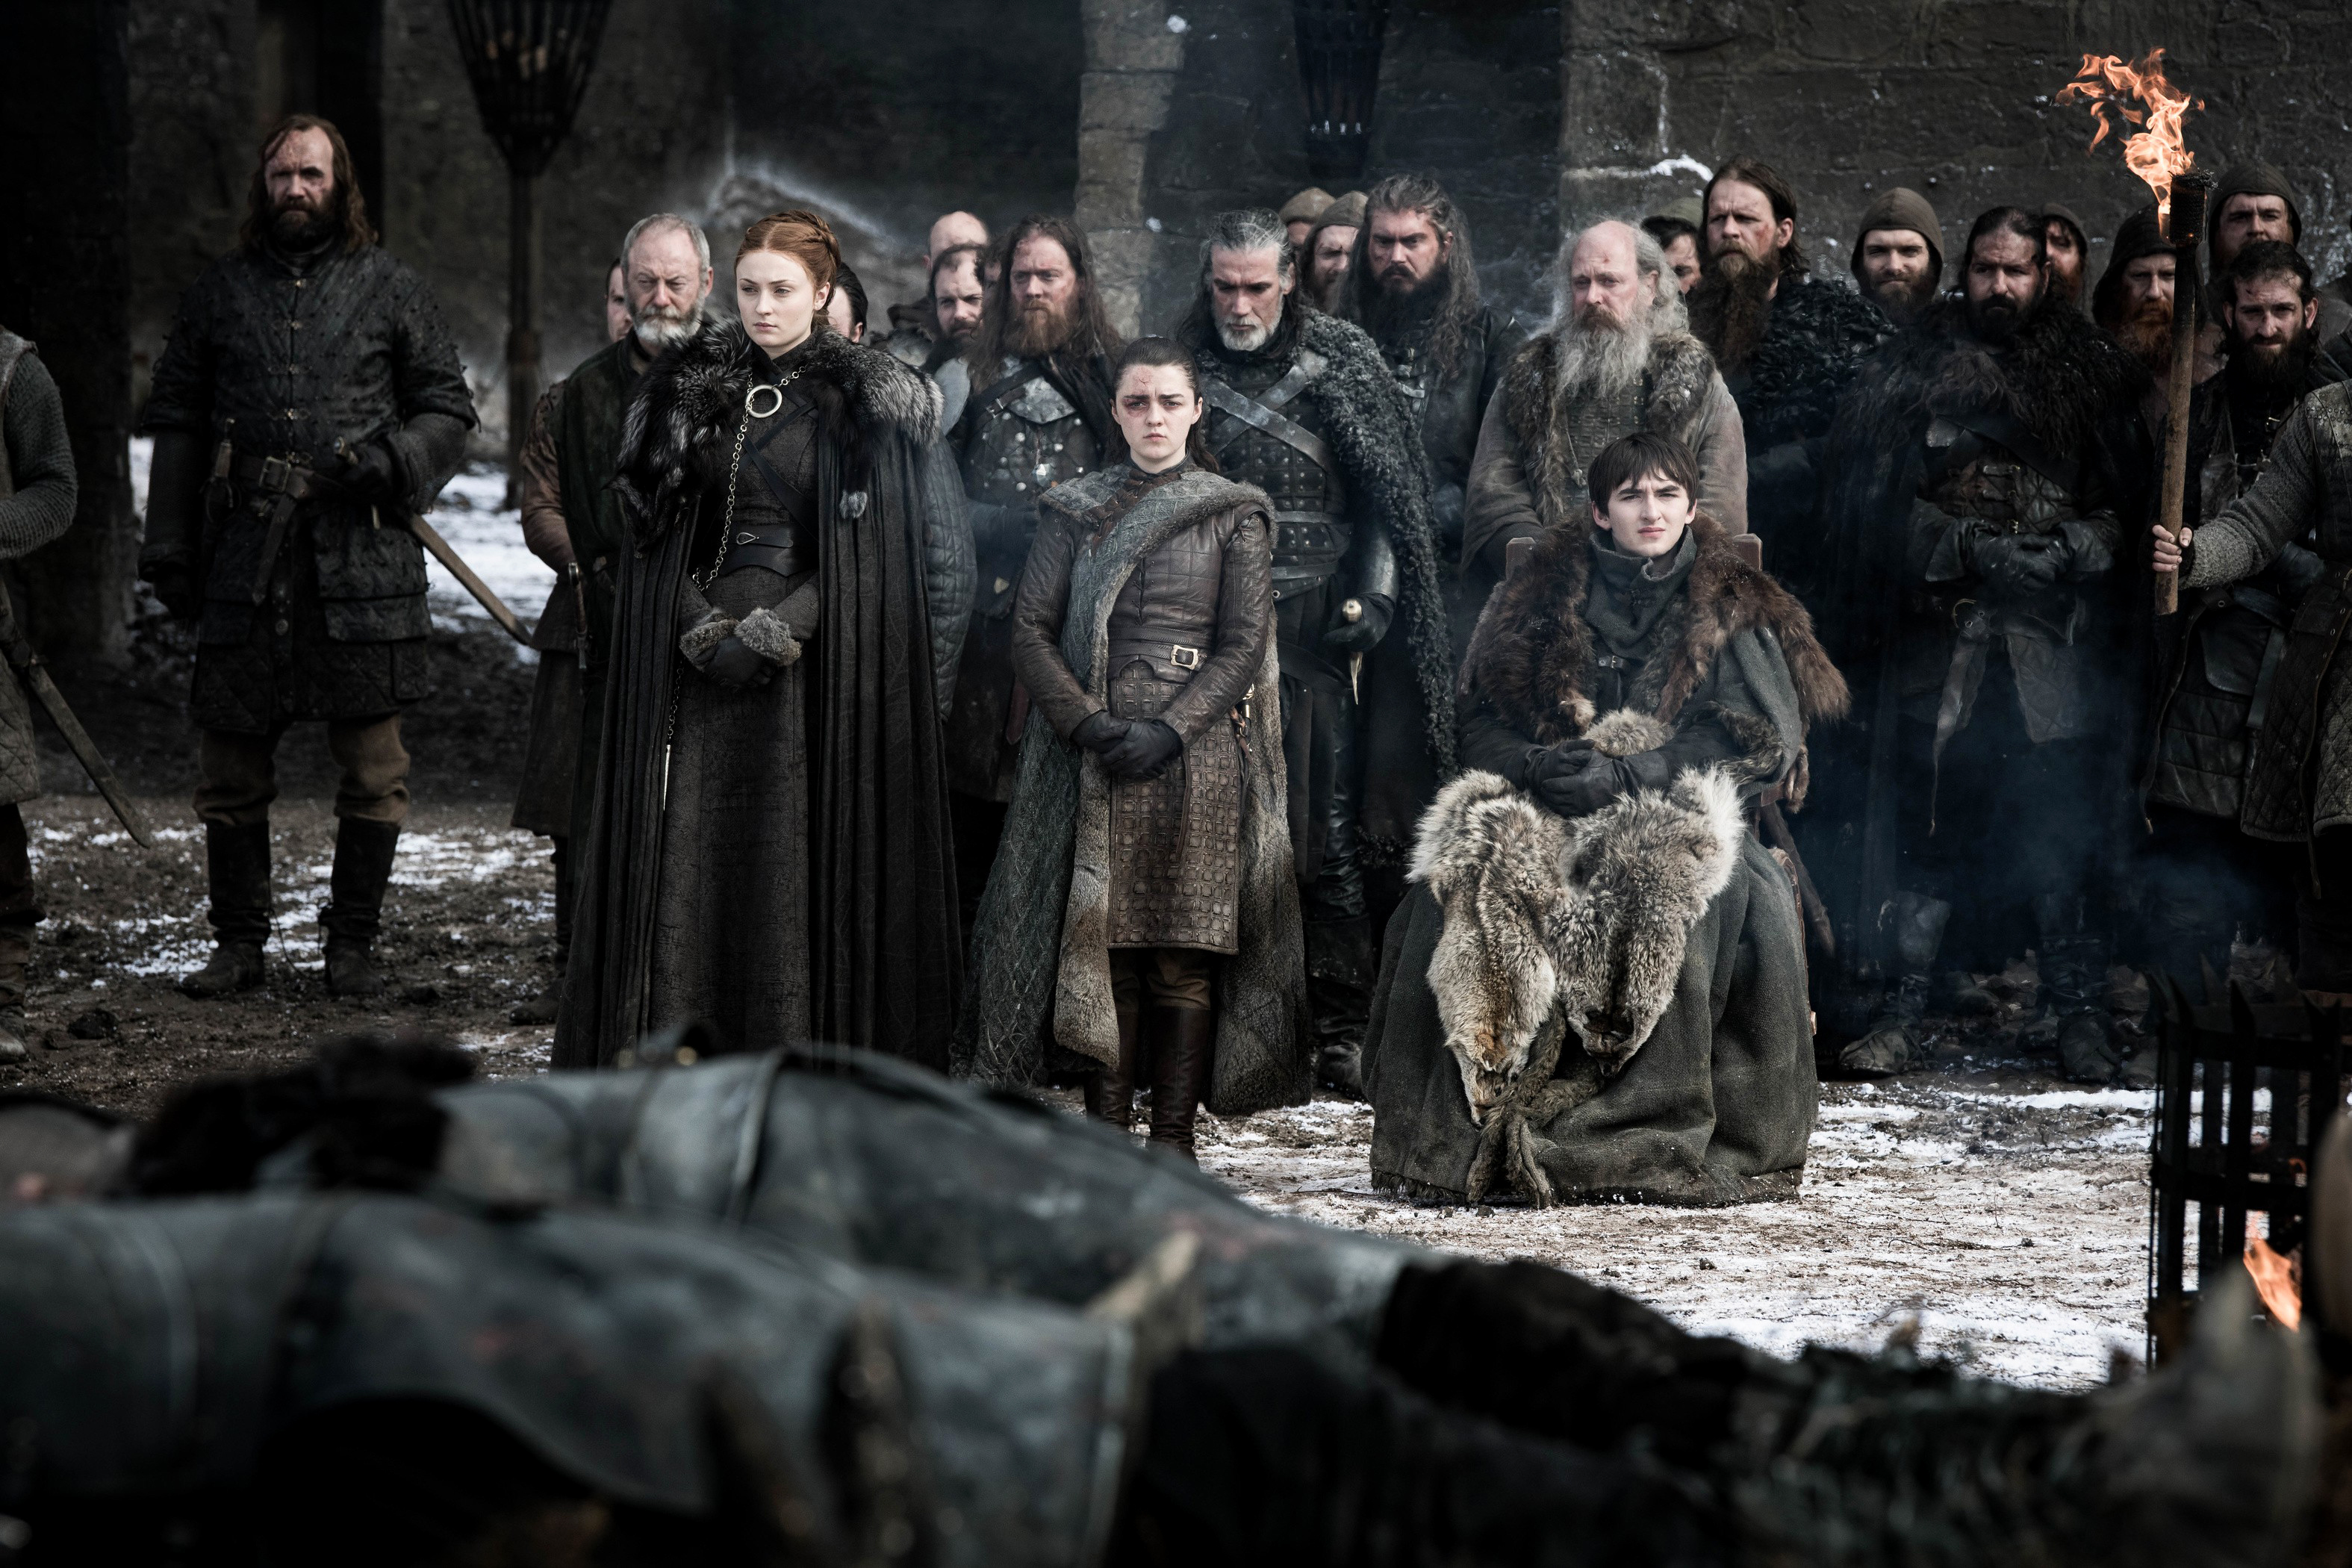 8x04 - The Last of the Starks - The Hound, Davos, Sansa, Arya and Bran